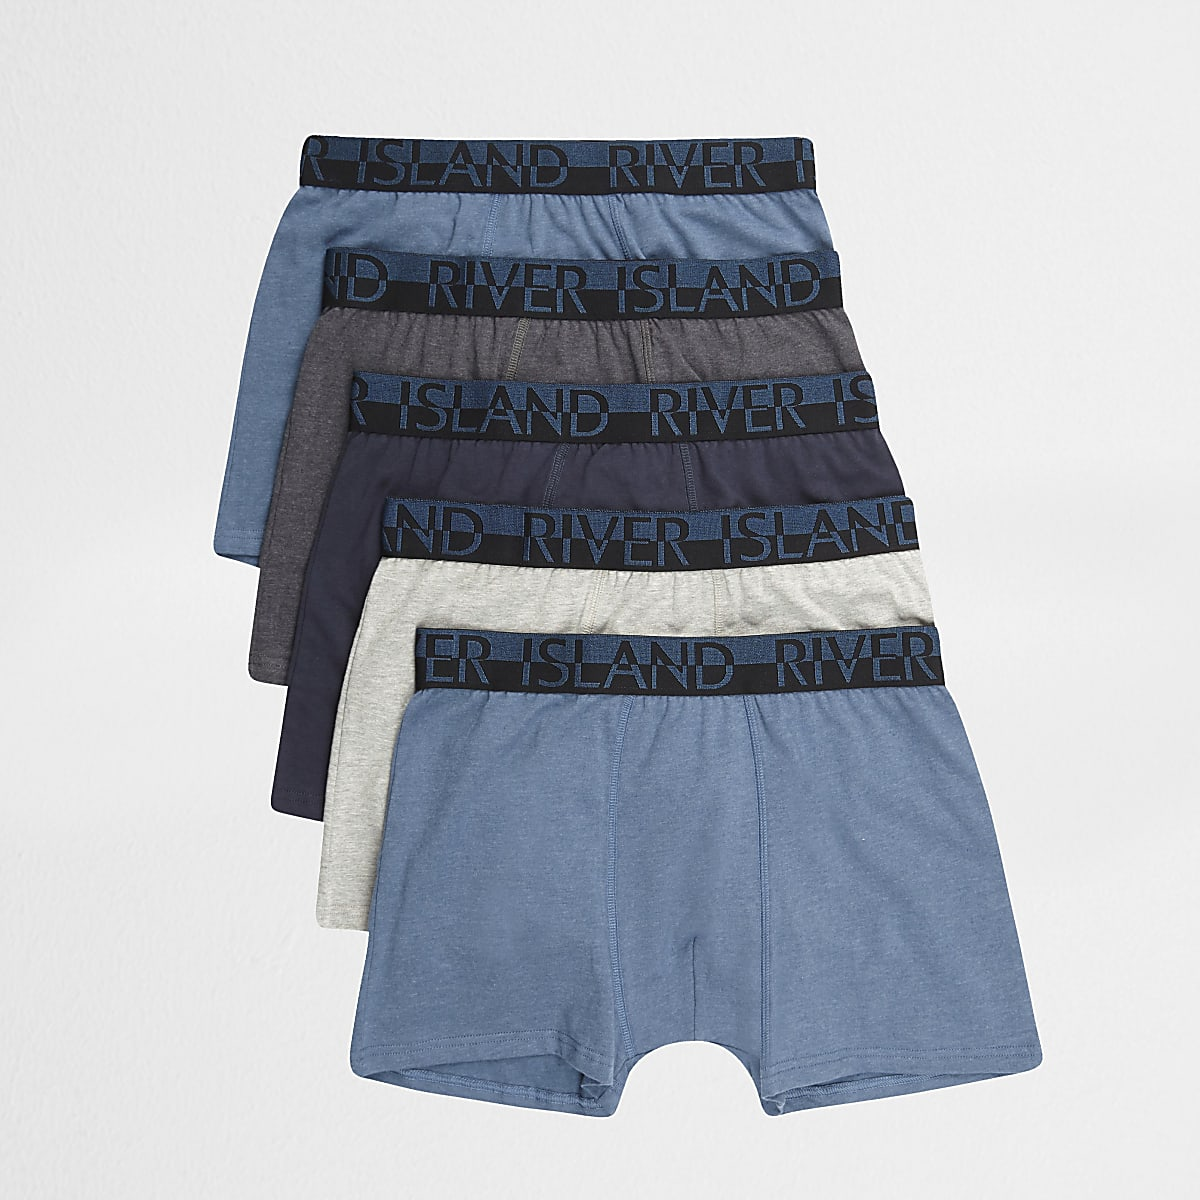 Blue RI branded trunks 5 pack